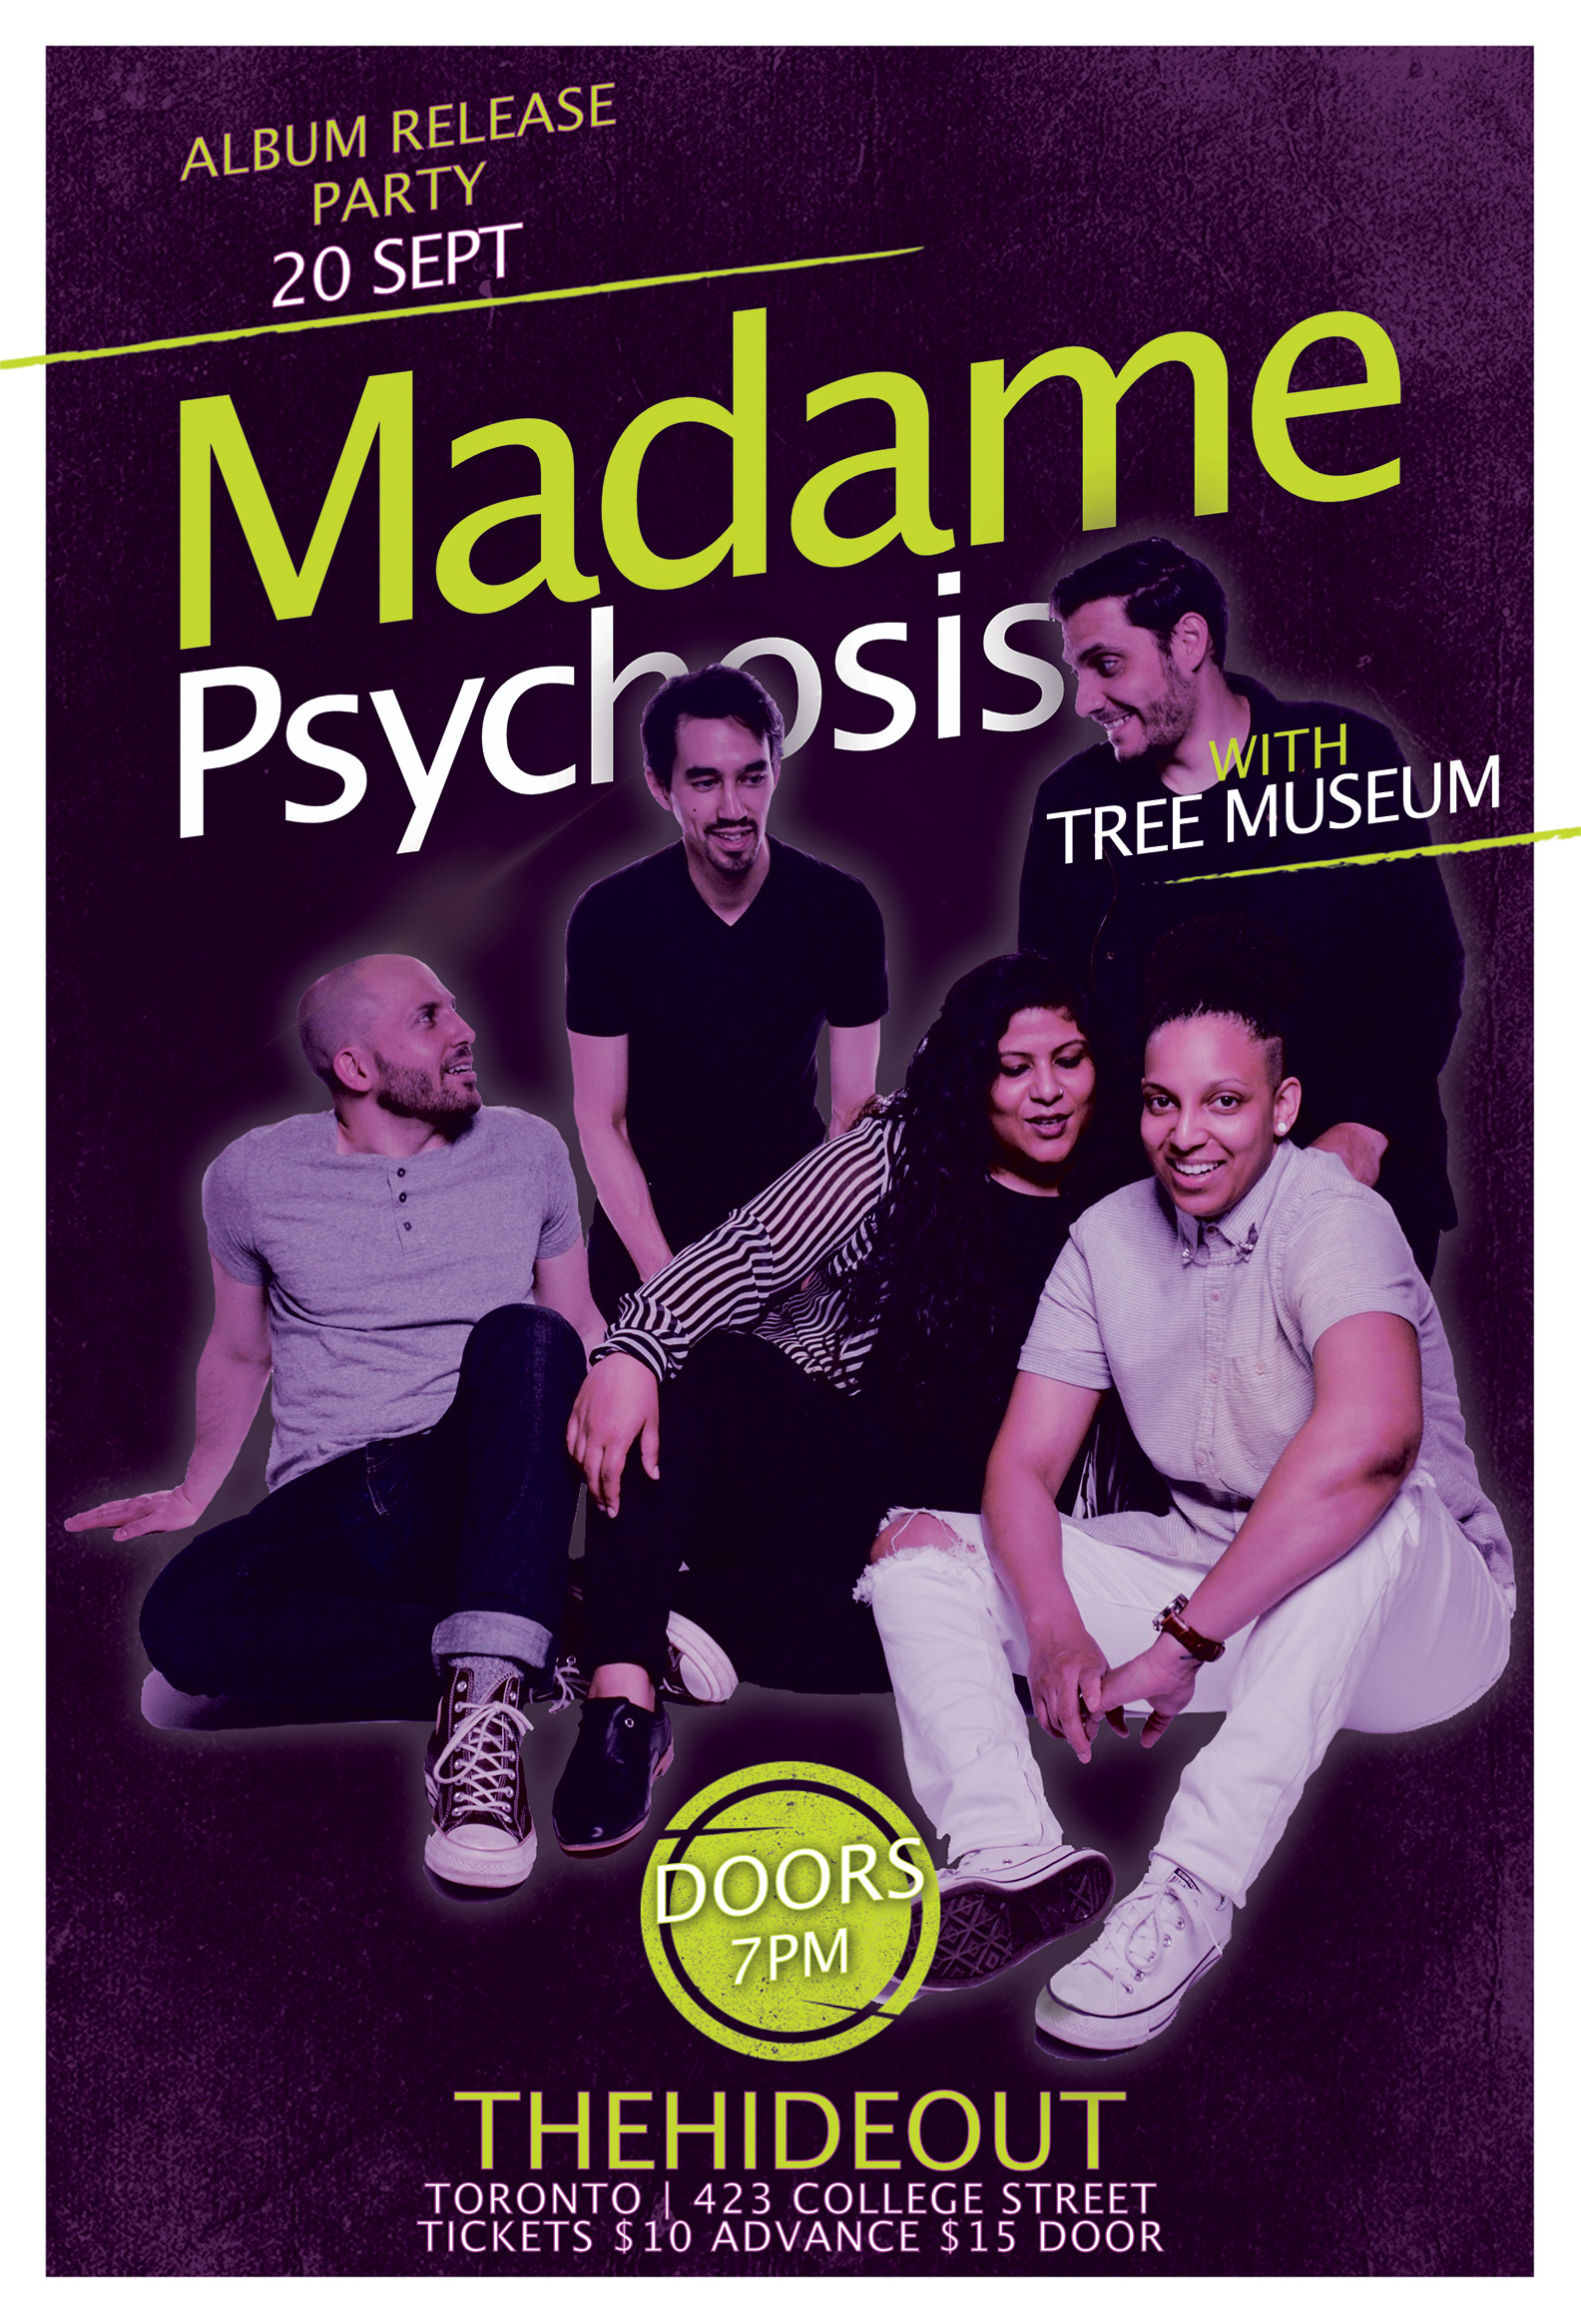 "Toronto-based alt pop and indie band Madame Psychosis celebrates the release of their second album, ""Survivor"", at The Hideout.    Doors:  7pm   Tree Museum:  8-8:45pm   Madame Psychosis:  9-10:30pm   After Party:  11pm   Links:    Website    Facebook    Instagram    Spotify    What the media is saying about Madame Psychosis:   ""The bands mixture of indie rock and alt pop is very impressive...they give every song their all, and do so with considerable class"" - Beehive Candy  ""A brilliant piece of music…Madame Psychosis has made a real gem again"" - Lefuturewave  ""The quintet offer up infectious melodies and funky guitar riffs in their lively indie-meets-rock sound"" - UK-based GigRadar  ""The heart-dropping anthem leaves us craving more from the indie rock collective, we can't wait to see what they deliver next!"" – LA-based Buzz Music (""Kapow"" review)  ""There's a genuine air of honesty that runs throughout their songwriting"" - Stereo Stickman   Read more  about what others are saying about Madame Psychosis"